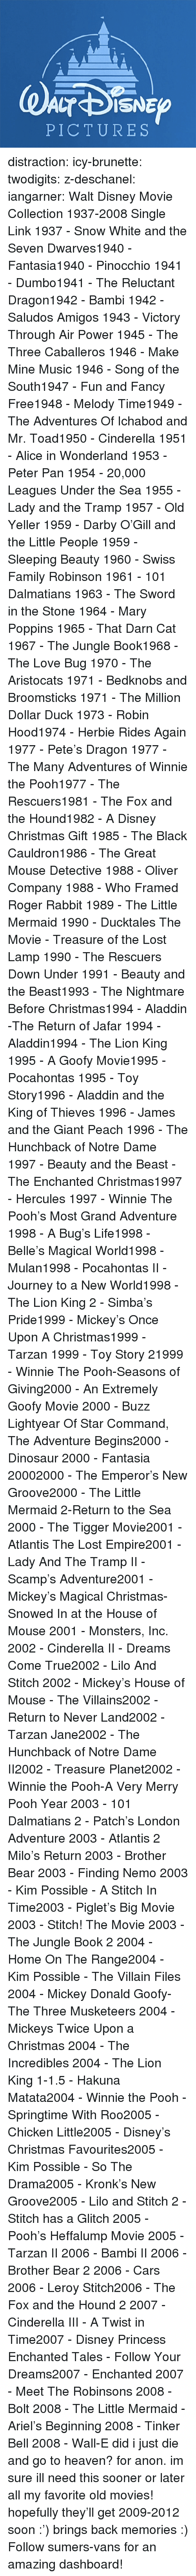 New Groove: PICTURES distraction:   icy-brunette:   twodigits:   z-deschanel:   iangarner:   Walt Disney Movie Collection 1937-2008 Single Link      1937 - Snow White and the Seven Dwarves1940 - Fantasia1940 - Pinocchio 1941 - Dumbo1941 - The Reluctant Dragon1942 - Bambi 1942 - Saludos Amigos 1943 - Victory Through Air Power 1945 - The Three Caballeros 1946 - Make Mine Music 1946 - Song of the South1947 - Fun and Fancy Free1948 - Melody Time1949 - The Adventures Of Ichabod and Mr. Toad1950 - Cinderella 1951 - Alice in Wonderland 1953 - Peter Pan 1954 - 20,000 Leagues Under the Sea 1955 - Lady and the Tramp 1957 - Old Yeller 1959 - Darby O'Gill and the Little People 1959 - Sleeping Beauty 1960 - Swiss Family Robinson 1961 - 101 Dalmatians 1963 - The Sword in the Stone 1964 - Mary Poppins 1965 - That Darn Cat 1967 - The Jungle Book1968 - The Love Bug 1970 - The Aristocats 1971 - Bedknobs and Broomsticks 1971 - The Million Dollar Duck 1973 - Robin Hood1974 - Herbie Rides Again 1977 - Pete's Dragon 1977 - The Many Adventures of Winnie the Pooh1977 - The Rescuers1981 - The Fox and the Hound1982 - A Disney Christmas Gift 1985 - The Black Cauldron1986 - The Great Mouse Detective 1988 - Oliver  Company 1988 - Who Framed Roger Rabbit 1989 - The Little Mermaid 1990 - Ducktales The Movie - Treasure of the Lost Lamp 1990 - The Rescuers Down Under 1991 - Beauty and the Beast1993 - The Nightmare Before Christmas1994 - Aladdin -The Return of Jafar 1994 - Aladdin1994 - The Lion King 1995 - A Goofy Movie1995 - Pocahontas 1995 - Toy Story1996 - Aladdin and the King of Thieves 1996 - James and the Giant Peach 1996 - The Hunchback of Notre Dame 1997 - Beauty and the Beast - The Enchanted Christmas1997 - Hercules 1997 - Winnie The Pooh's Most Grand Adventure 1998 - A Bug's Life1998 - Belle's Magical World1998 - Mulan1998 - Pocahontas II - Journey to a New World1998 - The Lion King 2 - Simba's Pride1999 - Mickey's Once Upon A Christmas1999 - Tarzan 1999 - Toy Story 21999 - Winnie The Pooh-Seasons of Giving2000 - An Extremely Goofy Movie 2000 - Buzz Lightyear Of Star Command, The Adventure Begins2000 - Dinosaur 2000 - Fantasia 20002000 - The Emperor's New Groove2000 - The Little Mermaid 2-Return to the Sea 2000 - The Tigger Movie2001 - Atlantis The Lost Empire2001 - Lady And The Tramp II - Scamp's Adventure2001 - Mickey's Magical Christmas-Snowed In at the House of Mouse 2001 - Monsters, Inc. 2002 - Cinderella II - Dreams Come True2002 - Lilo And Stitch 2002 - Mickey's House of Mouse - The Villains2002 - Return to Never Land2002 - Tarzan  Jane2002 - The Hunchback of Notre Dame II2002 - Treasure Planet2002 - Winnie the Pooh-A Very Merry Pooh Year 2003 - 101 Dalmatians 2 - Patch's London Adventure 2003 - Atlantis 2 Milo's Return 2003 - Brother Bear 2003 - Finding Nemo 2003 - Kim Possible - A Stitch In Time2003 - Piglet's Big Movie 2003 - Stitch! The Movie 2003 - The Jungle Book 2 2004 - Home On The Range2004 - Kim Possible - The Villain Files 2004 - Mickey Donald Goofy-The Three Musketeers 2004 - Mickeys Twice Upon a Christmas 2004 - The Incredibles 2004 - The Lion King 1-1.5 - Hakuna Matata2004 - Winnie the Pooh - Springtime With Roo2005 - Chicken Little2005 - Disney's Christmas Favourites2005 - Kim Possible - So The Drama2005 - Kronk's New Groove2005 - Lilo and Stitch 2 - Stitch has a Glitch 2005 - Pooh's Heffalump Movie 2005 - Tarzan II 2006 - Bambi II 2006 - Brother Bear 2 2006 - Cars 2006 - Leroy  Stitch2006 - The Fox and the Hound 2 2007 - Cinderella III - A Twist in Time2007 - Disney Princess Enchanted Tales - Follow Your Dreams2007 - Enchanted 2007 - Meet The Robinsons 2008 - Bolt 2008 - The Little Mermaid - Ariel's Beginning 2008 - Tinker Bell 2008 - Wall-E      did i just die and go to heaven?   for anon.    im sure ill need this sooner or later    all my favorite old movies! hopefully they'll get 2009-2012 soon :')   brings back memories :)   Follow sumers-vans for an amazing dashboard!